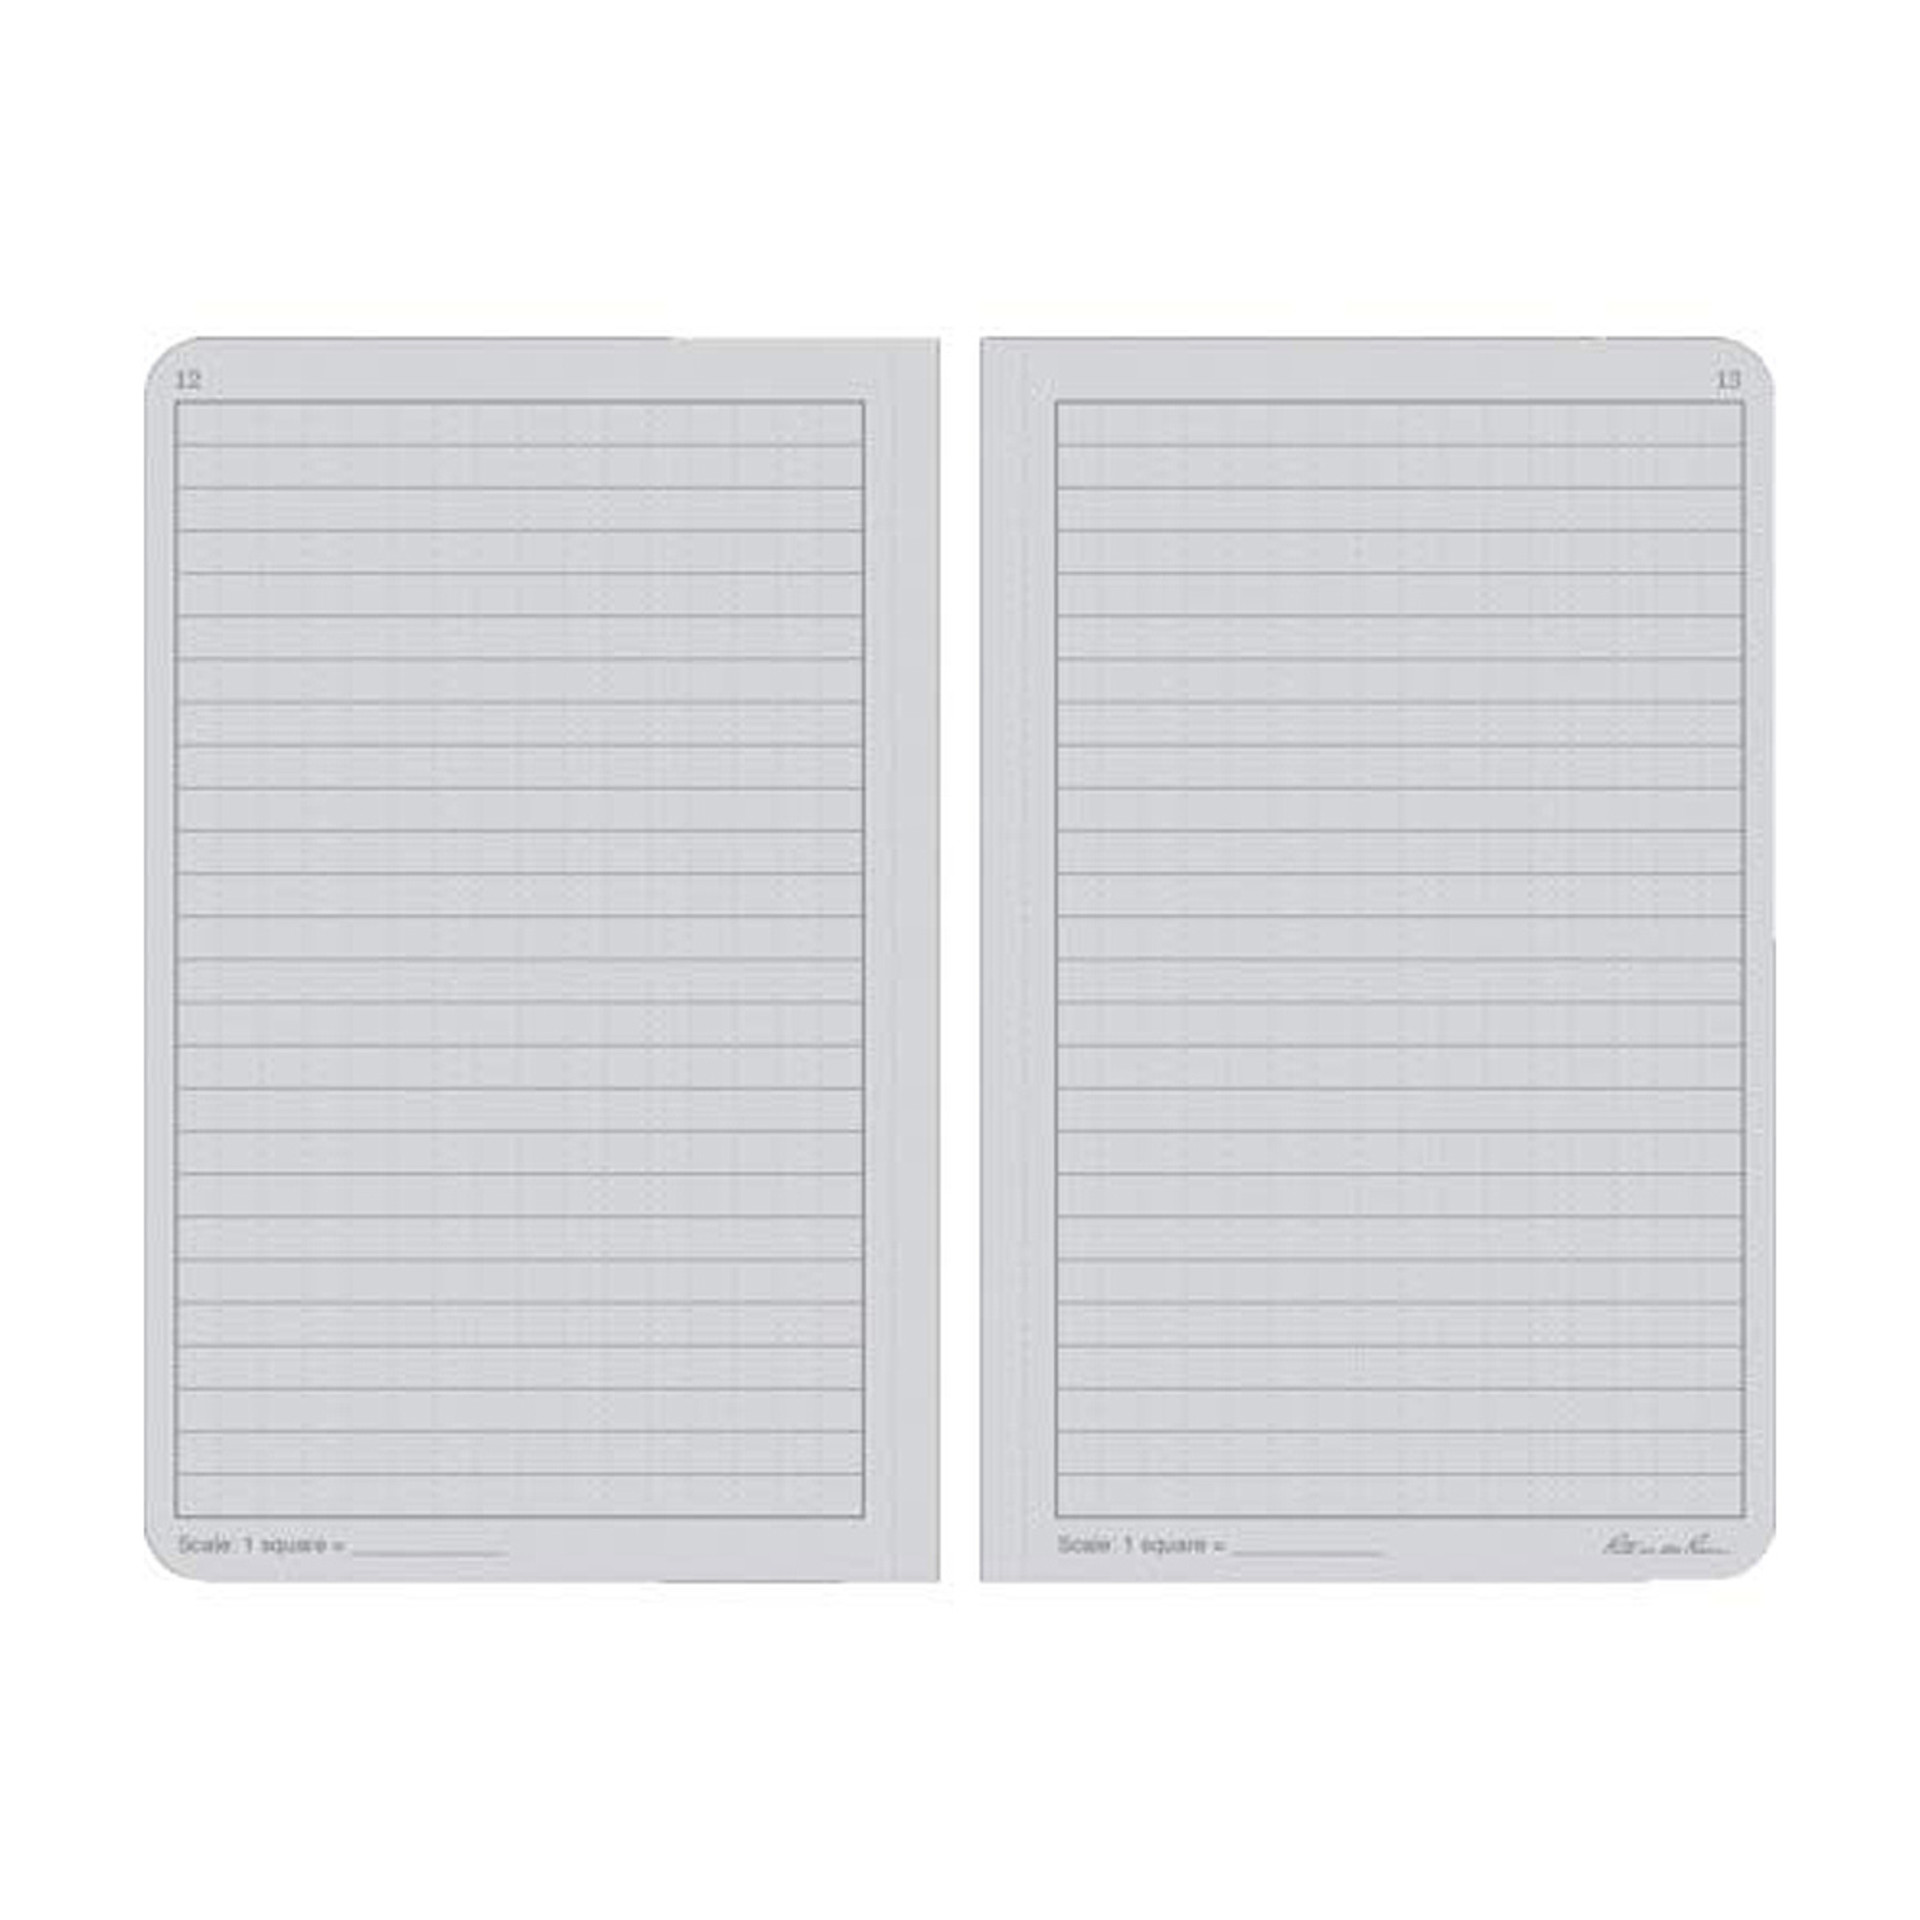 Rite in the Rain Universal Field Notebook Pages